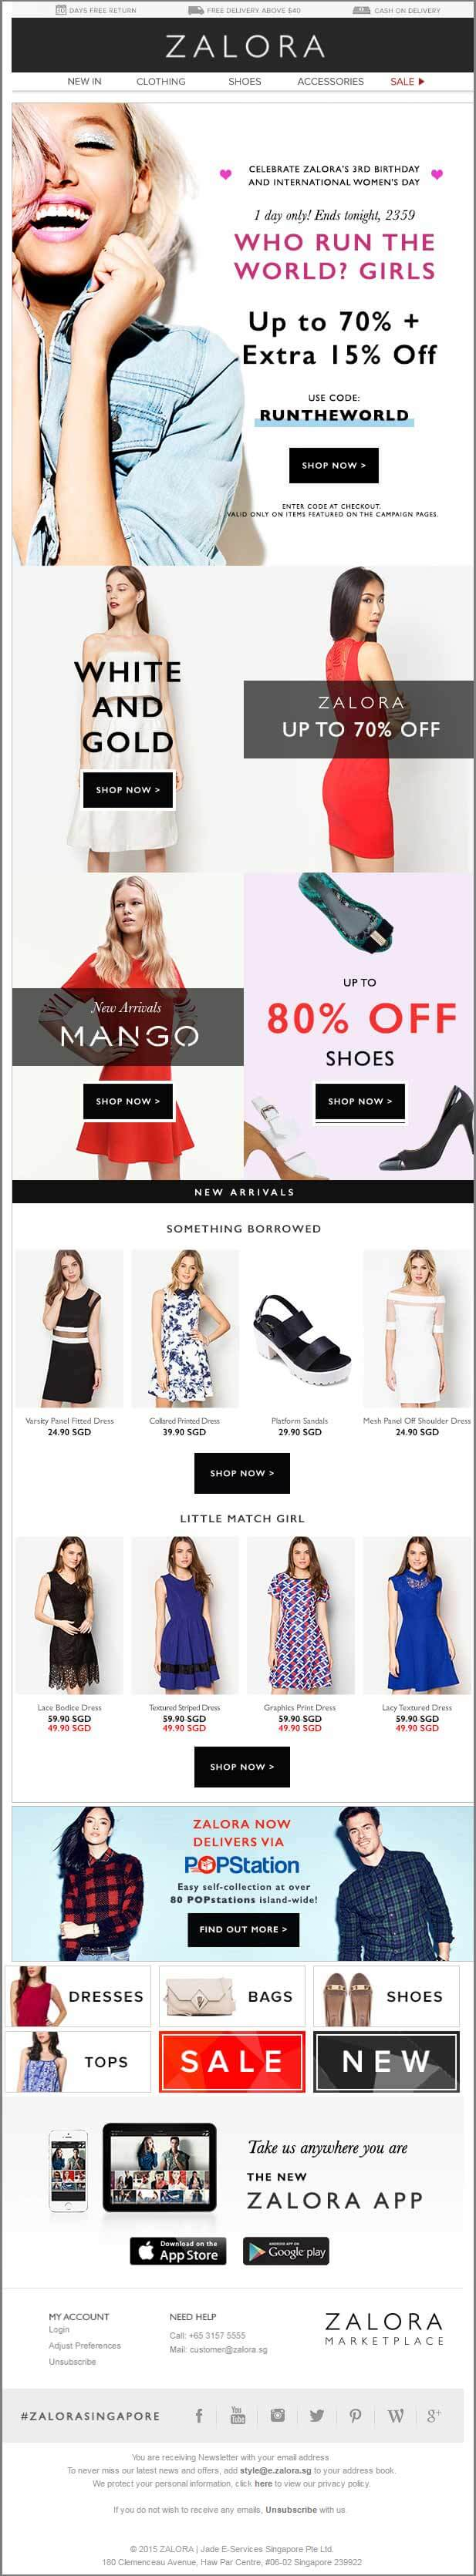 Women's Day Email_ZALORA